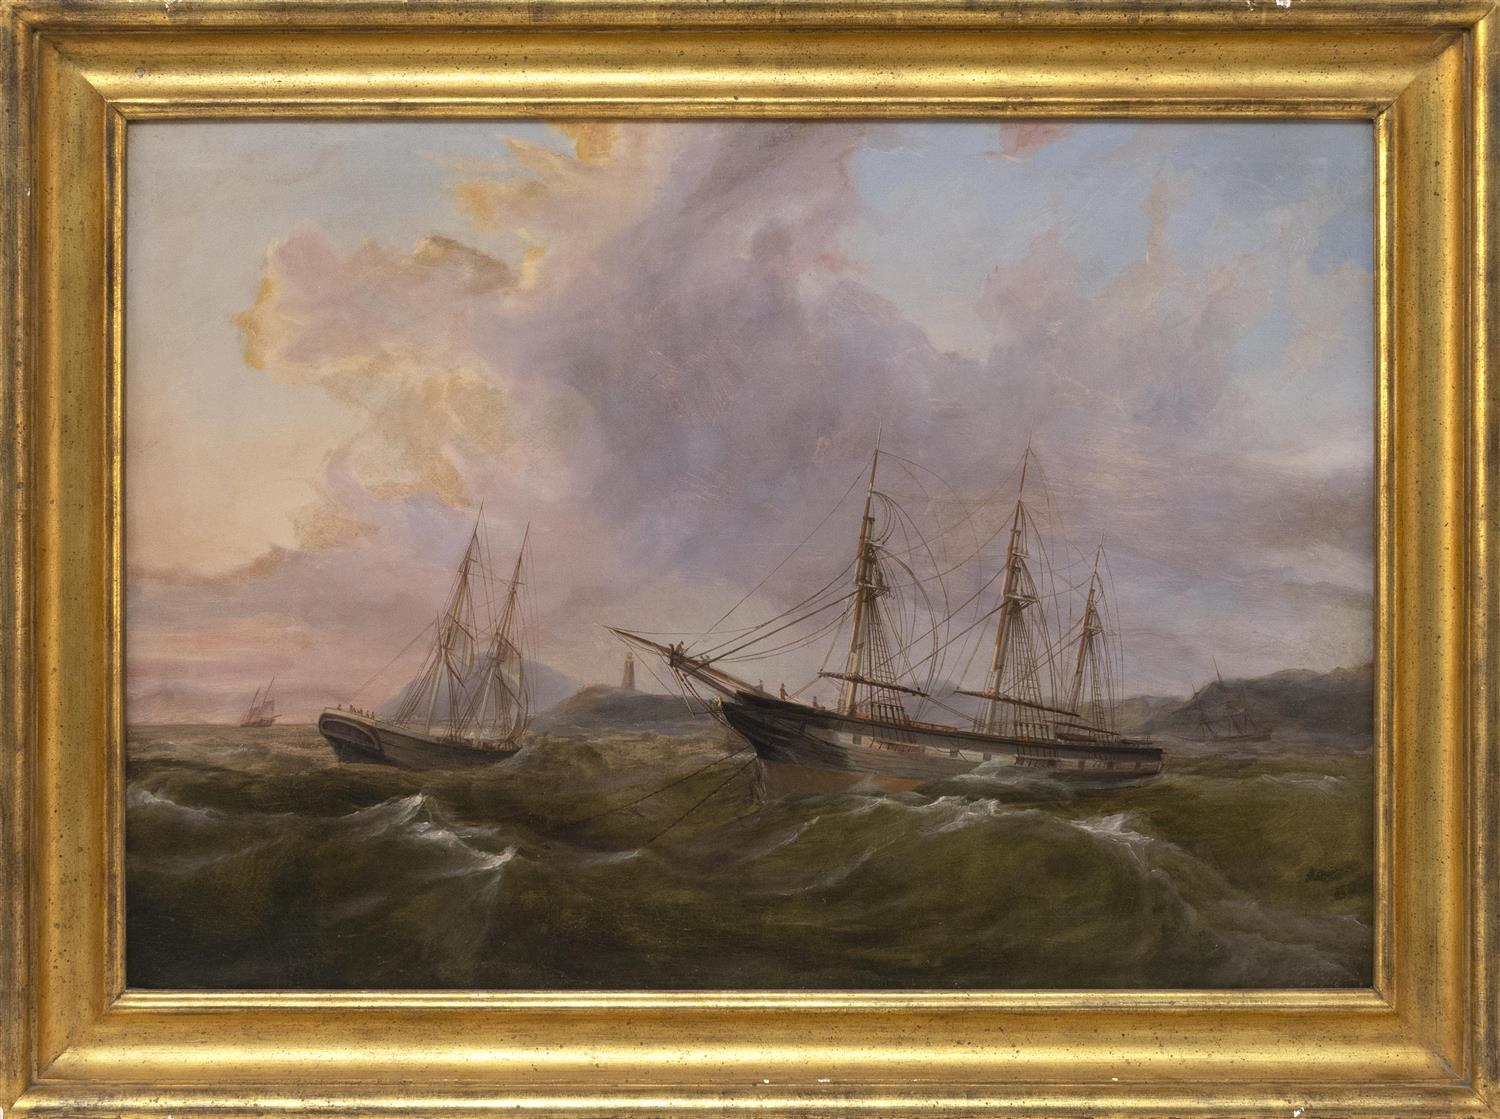 """AMERICAN OR ENGLISH SCHOOL, Circa 1860, Ships under sunset skies., Oil on canvas, 24"""" x 34"""". Framed 29"""" x 40""""."""